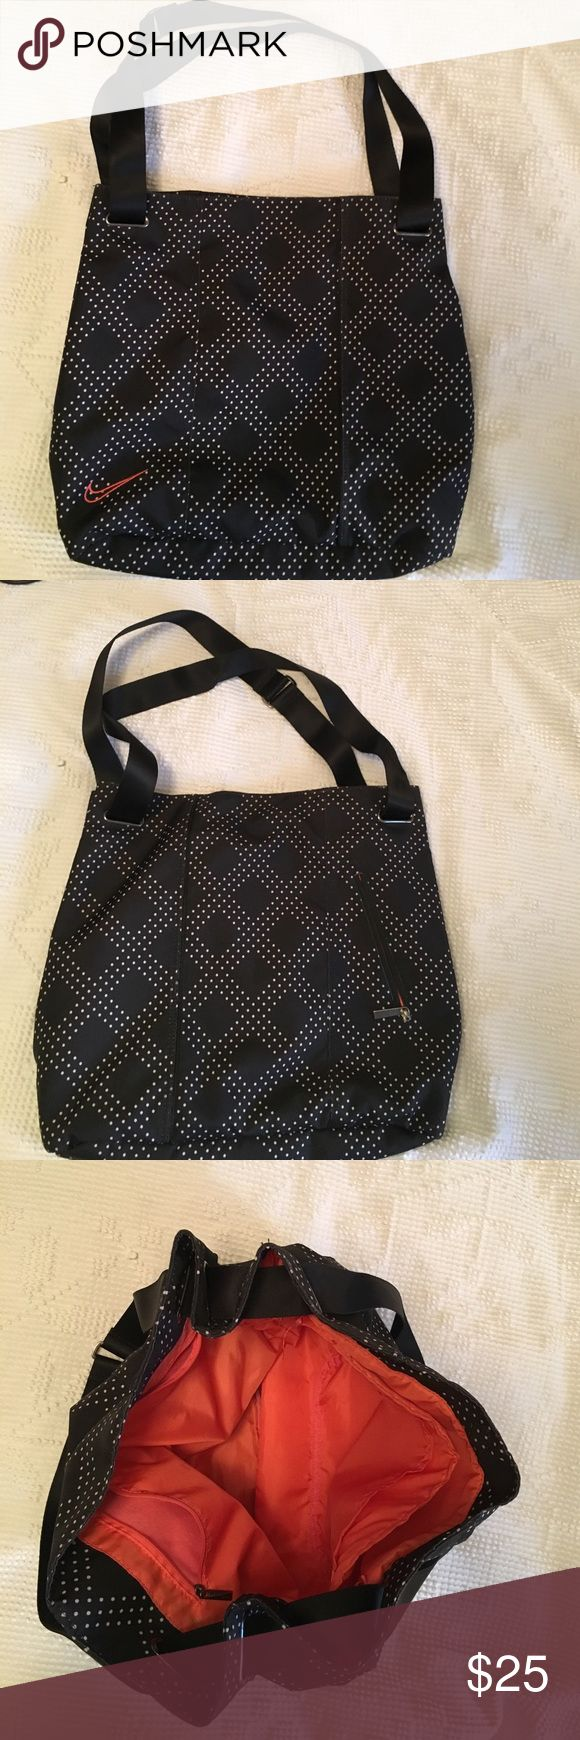 Nike bag Great Nike shoulder bag in like new condition. Has a side padded spot for your laptop. Slight tear on the inside pouch, but other then that bag is in great condition. Nike Bags Shoulder Bags